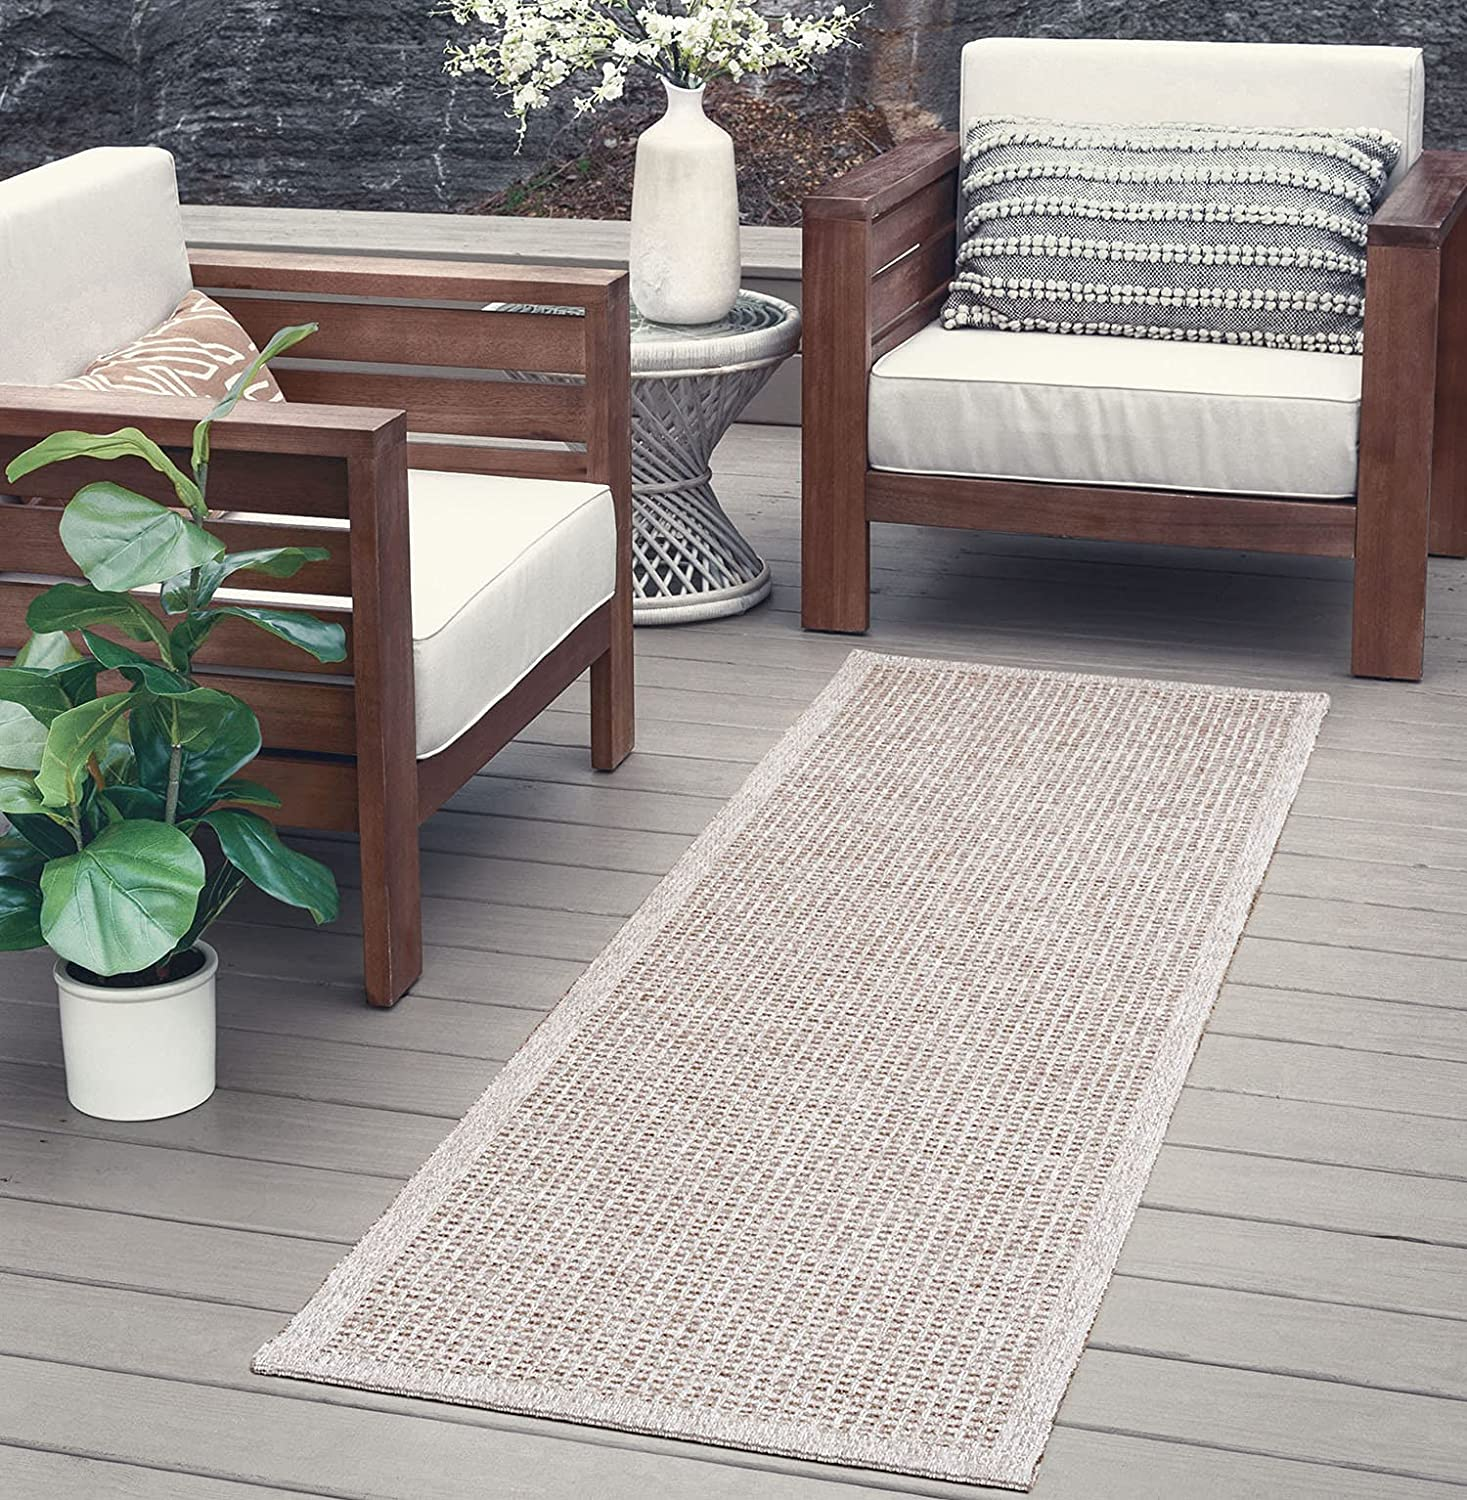 Taupe Jute Water Oakland Mall Resistant San Diego Mall 2x8 Runner Outdoor Pat Hallway Indoor